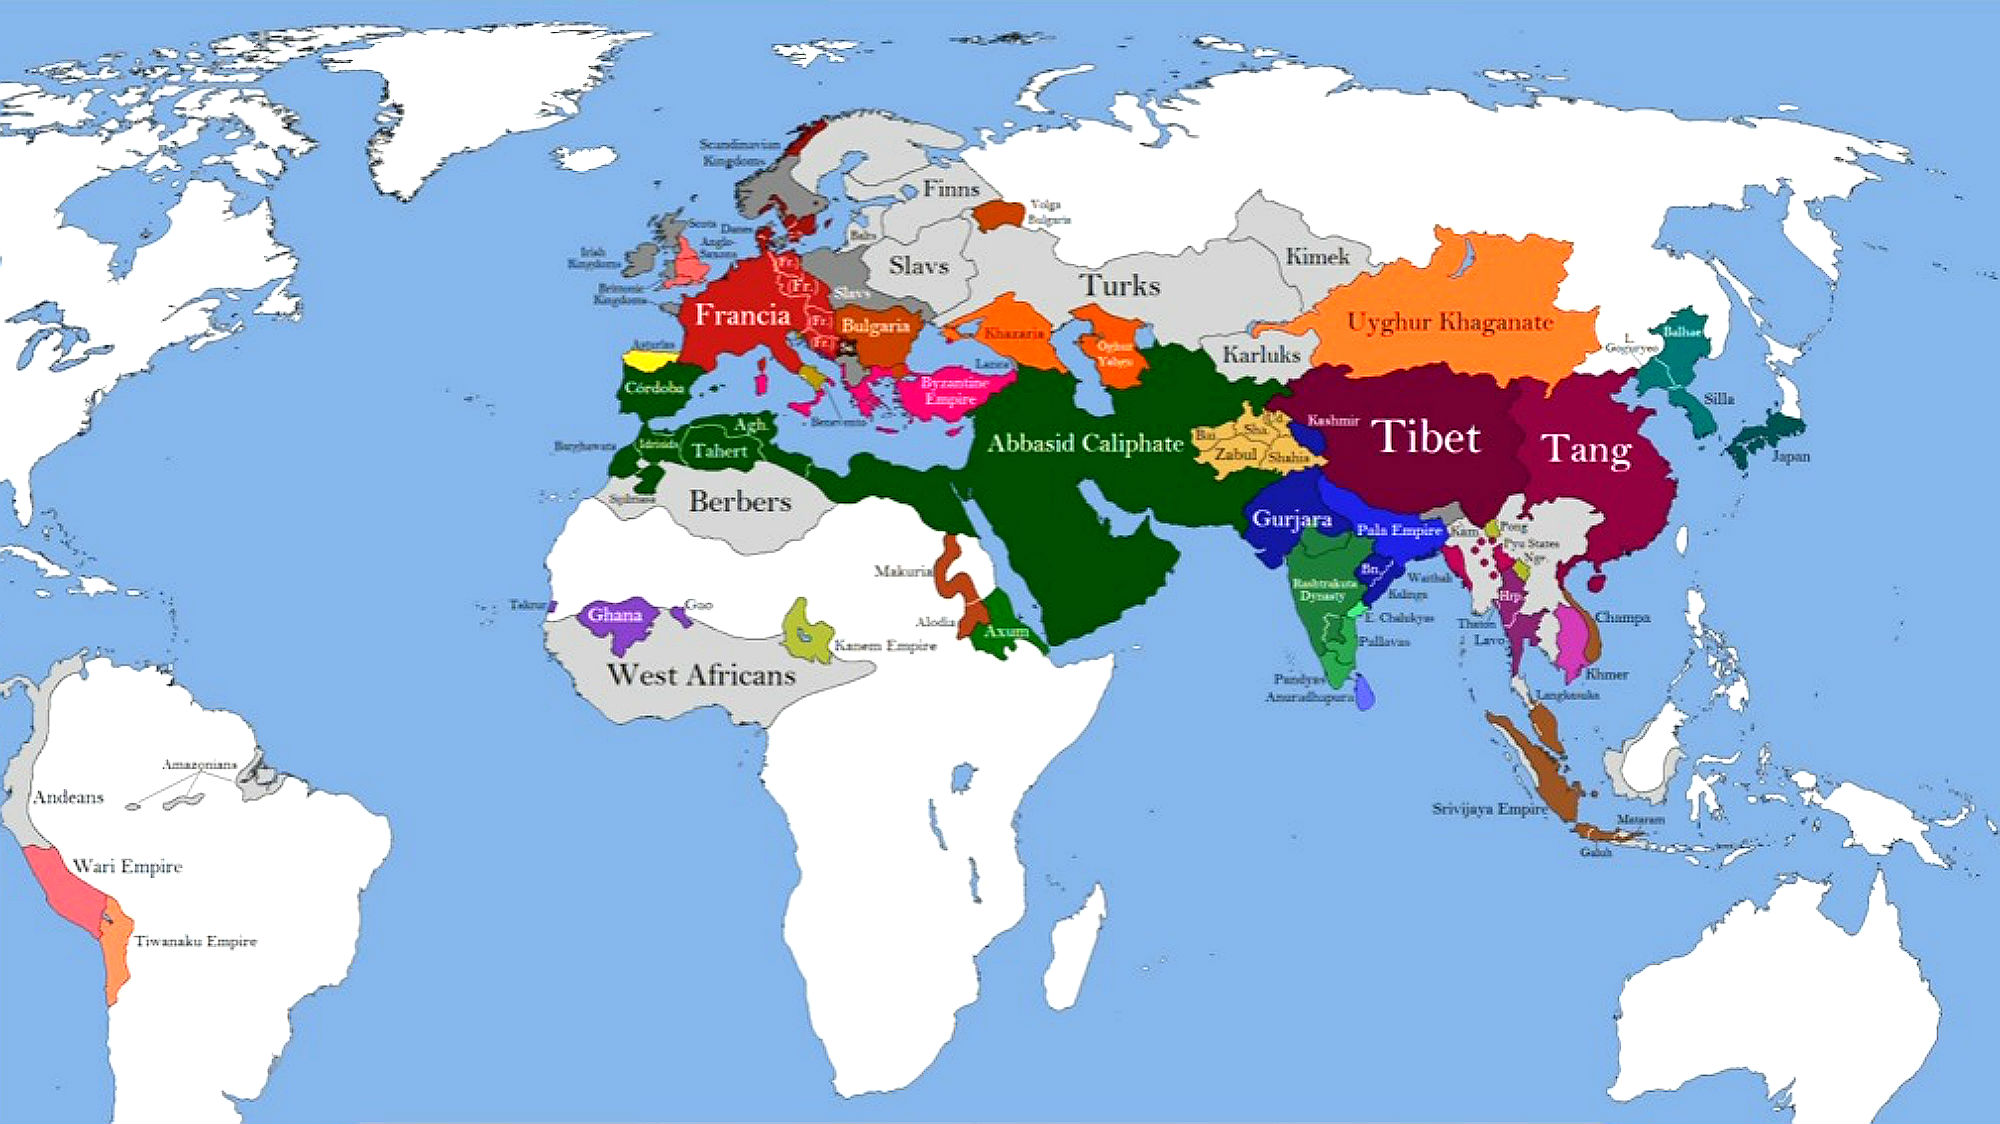 List Of Synonyms And Antonyms Of The Word Londres Mapa Mundi